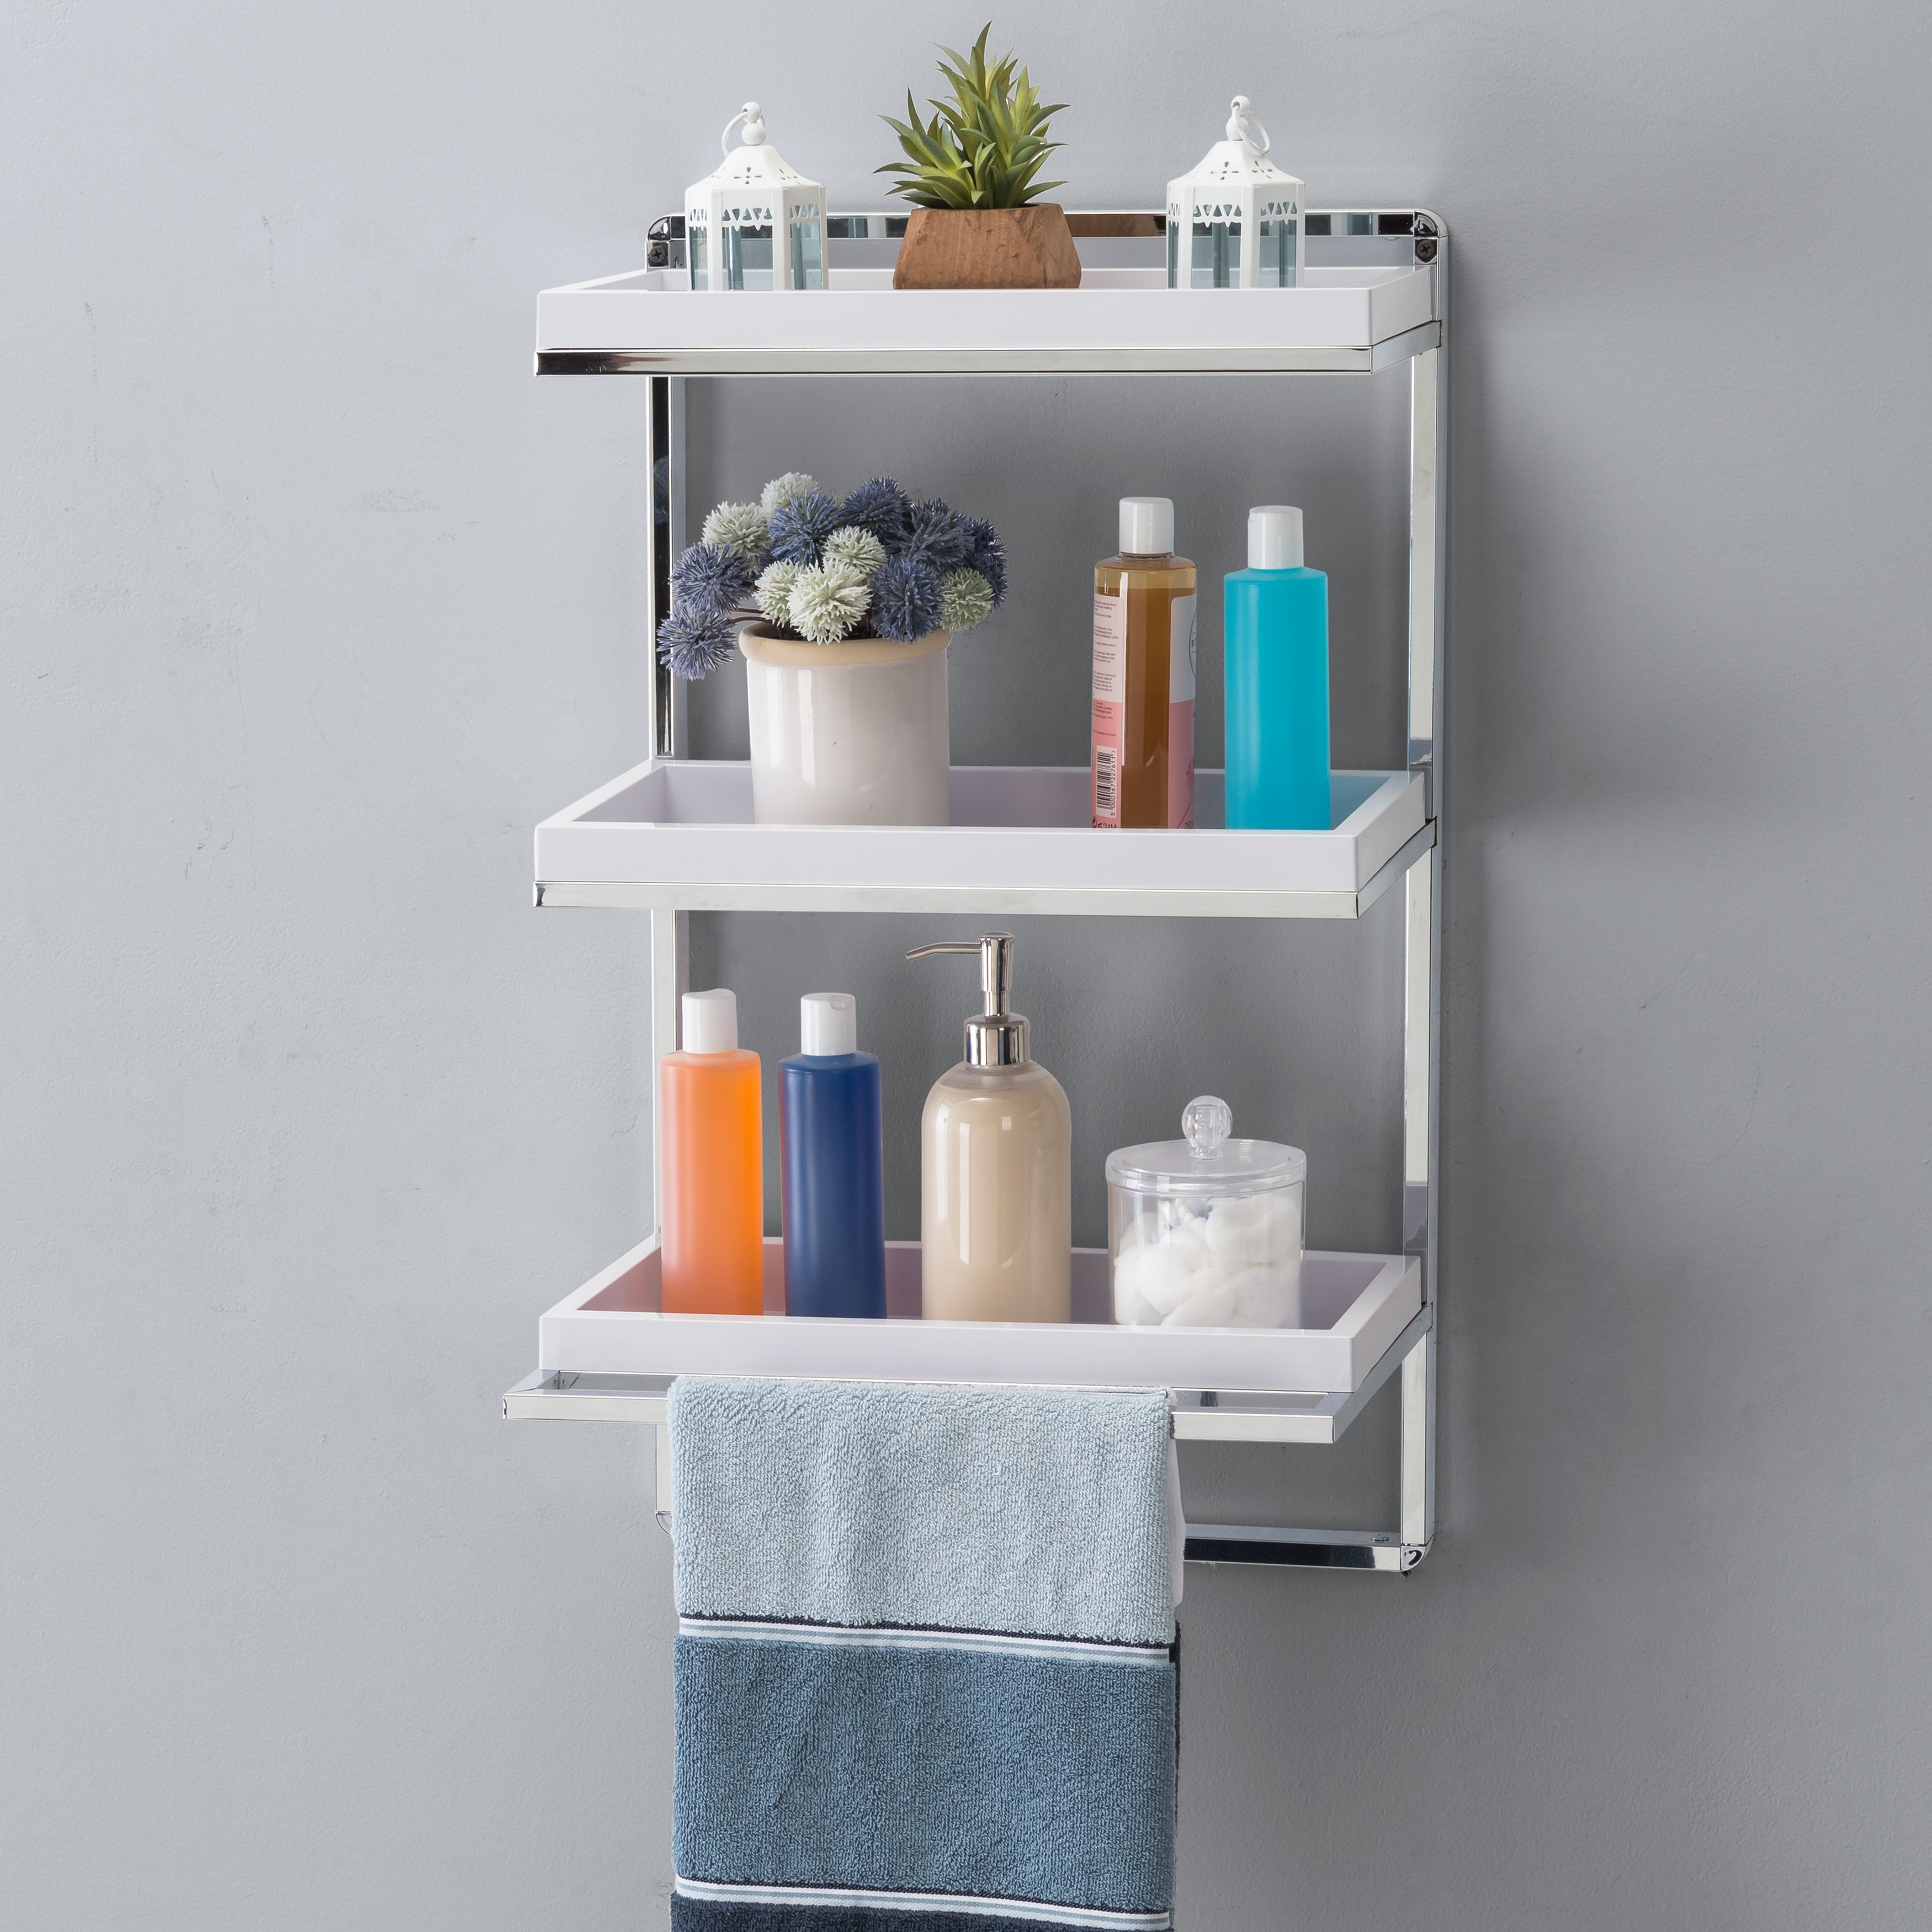 Wall Mount 3 Tier White And Chrome Bathroom Shelf With Towel Bar And Removable Trays Danya B In 2021 Chrome Bathroom Shelves Wall Mounted Bathroom Cabinets Bathroom Shelves